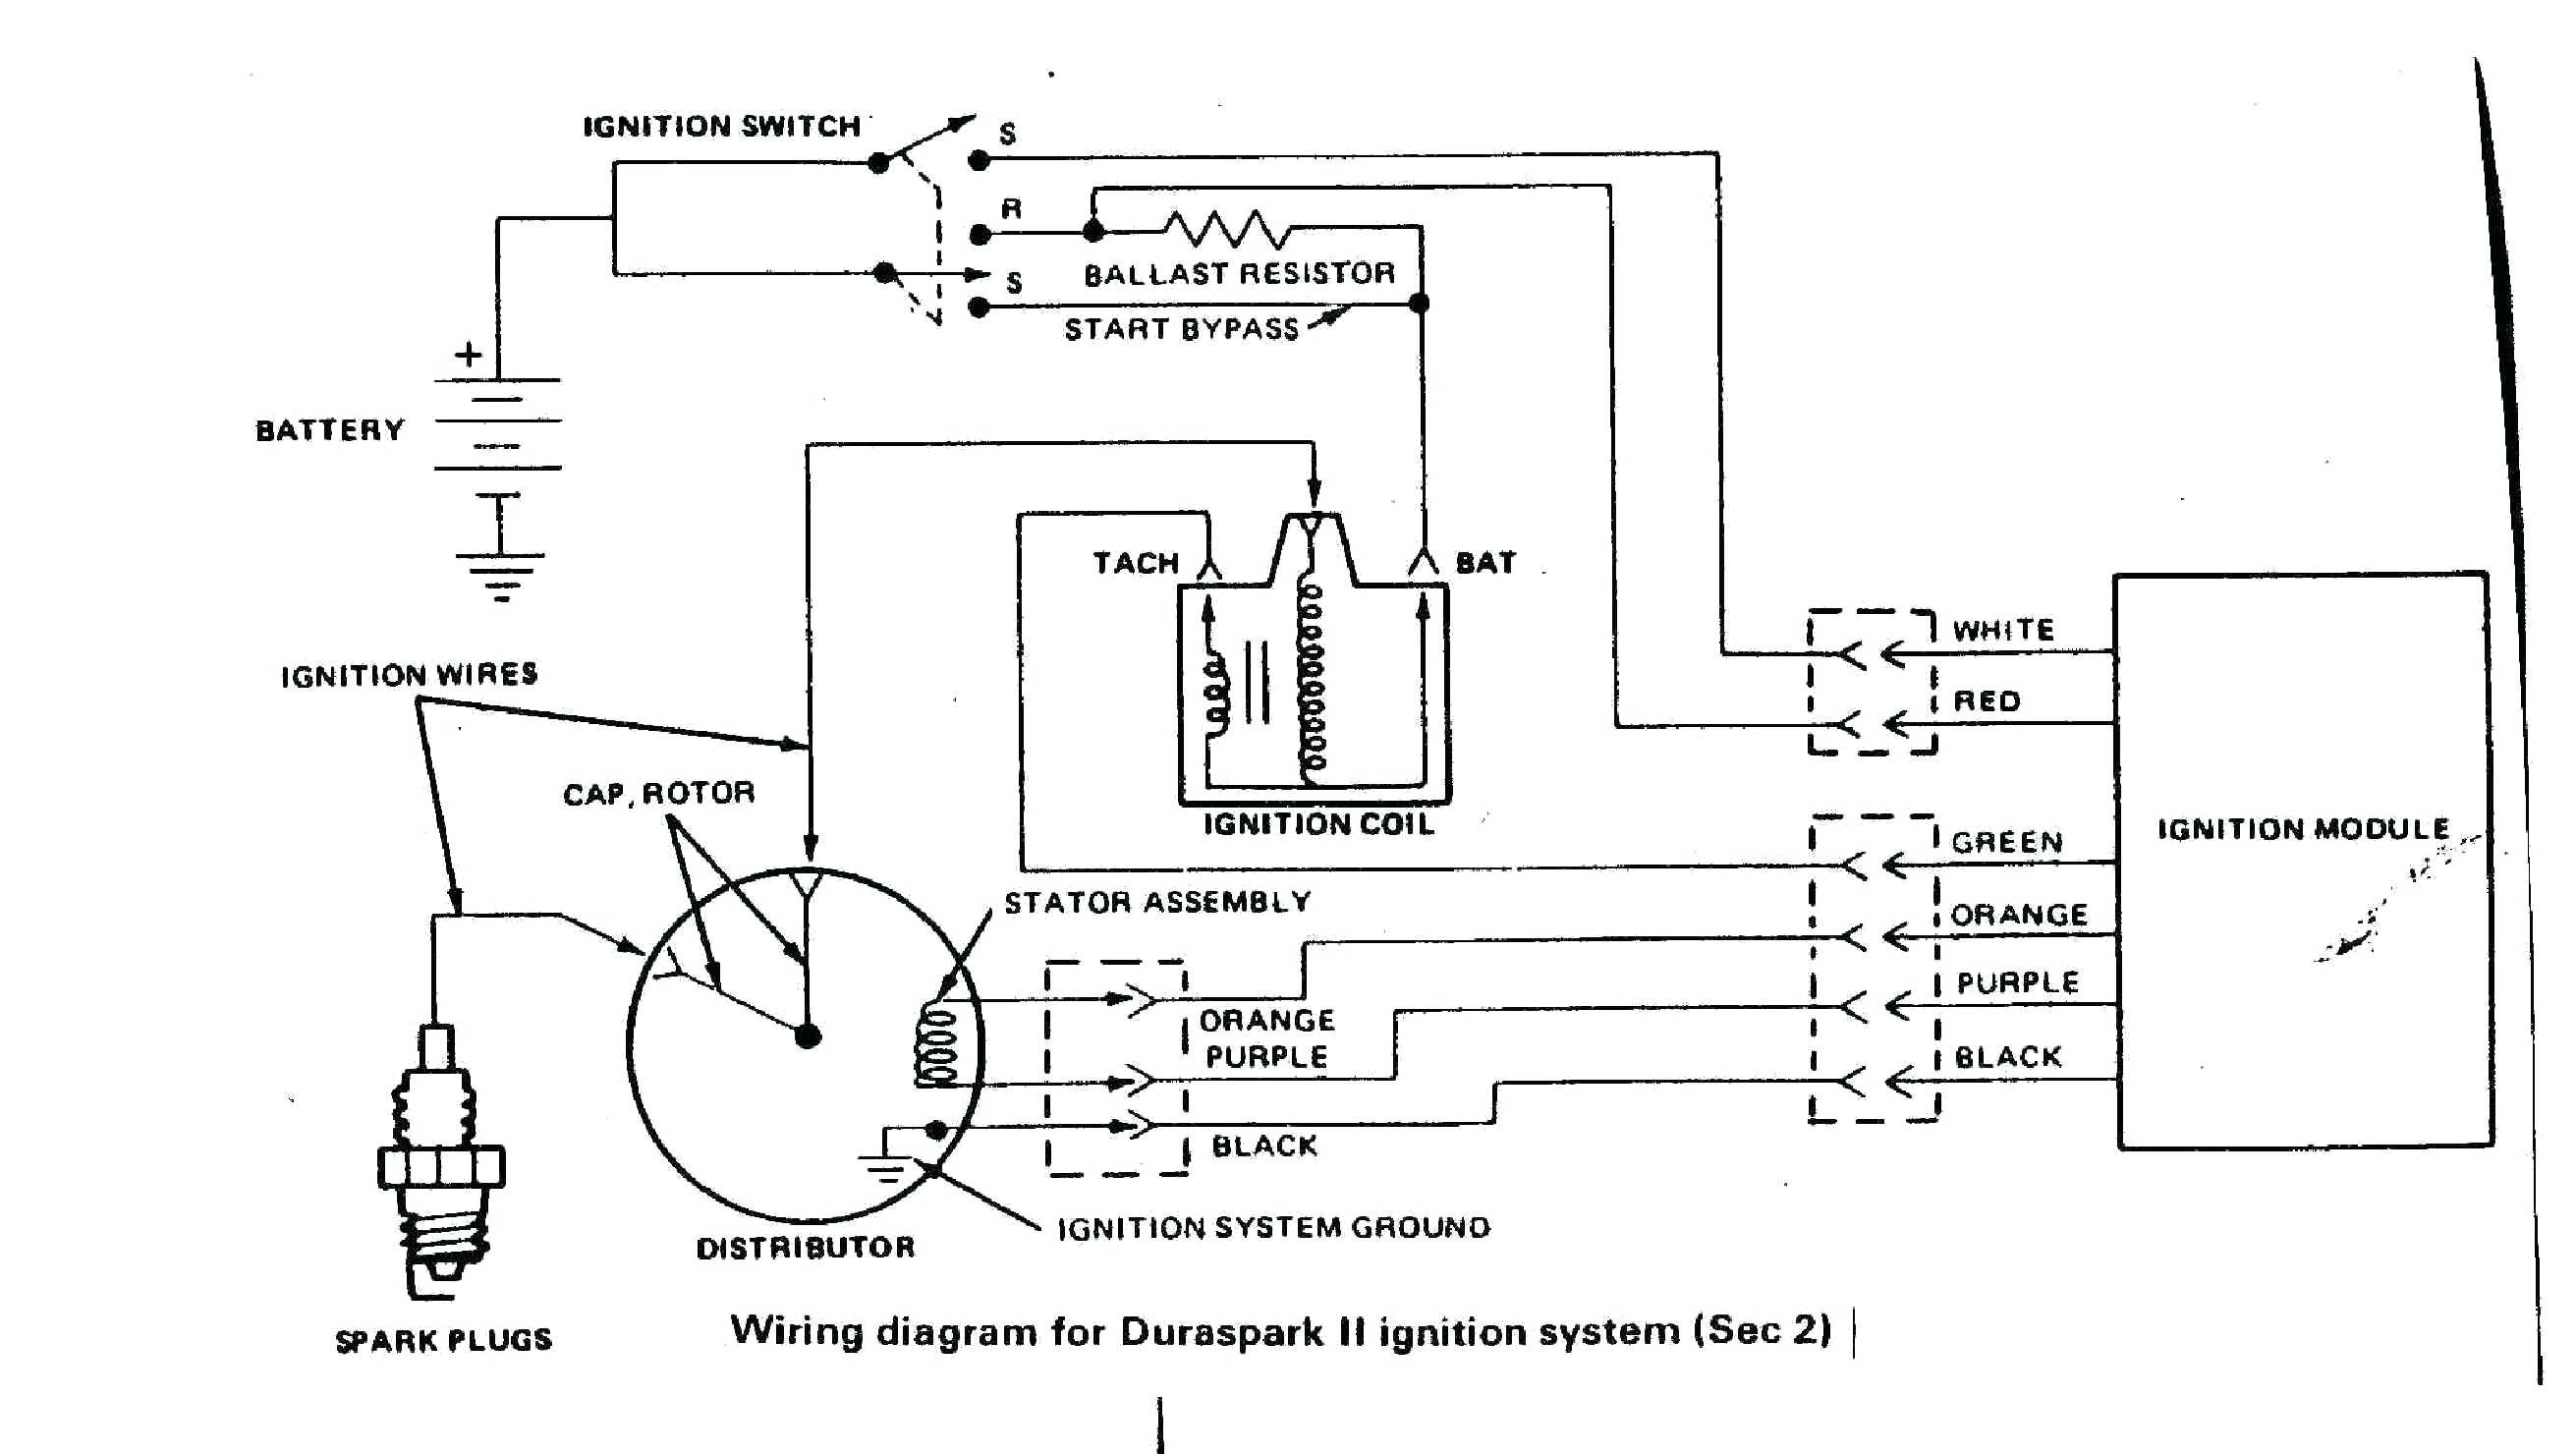 Ford Ignition Module Wiring - Wiring Diagram Local on